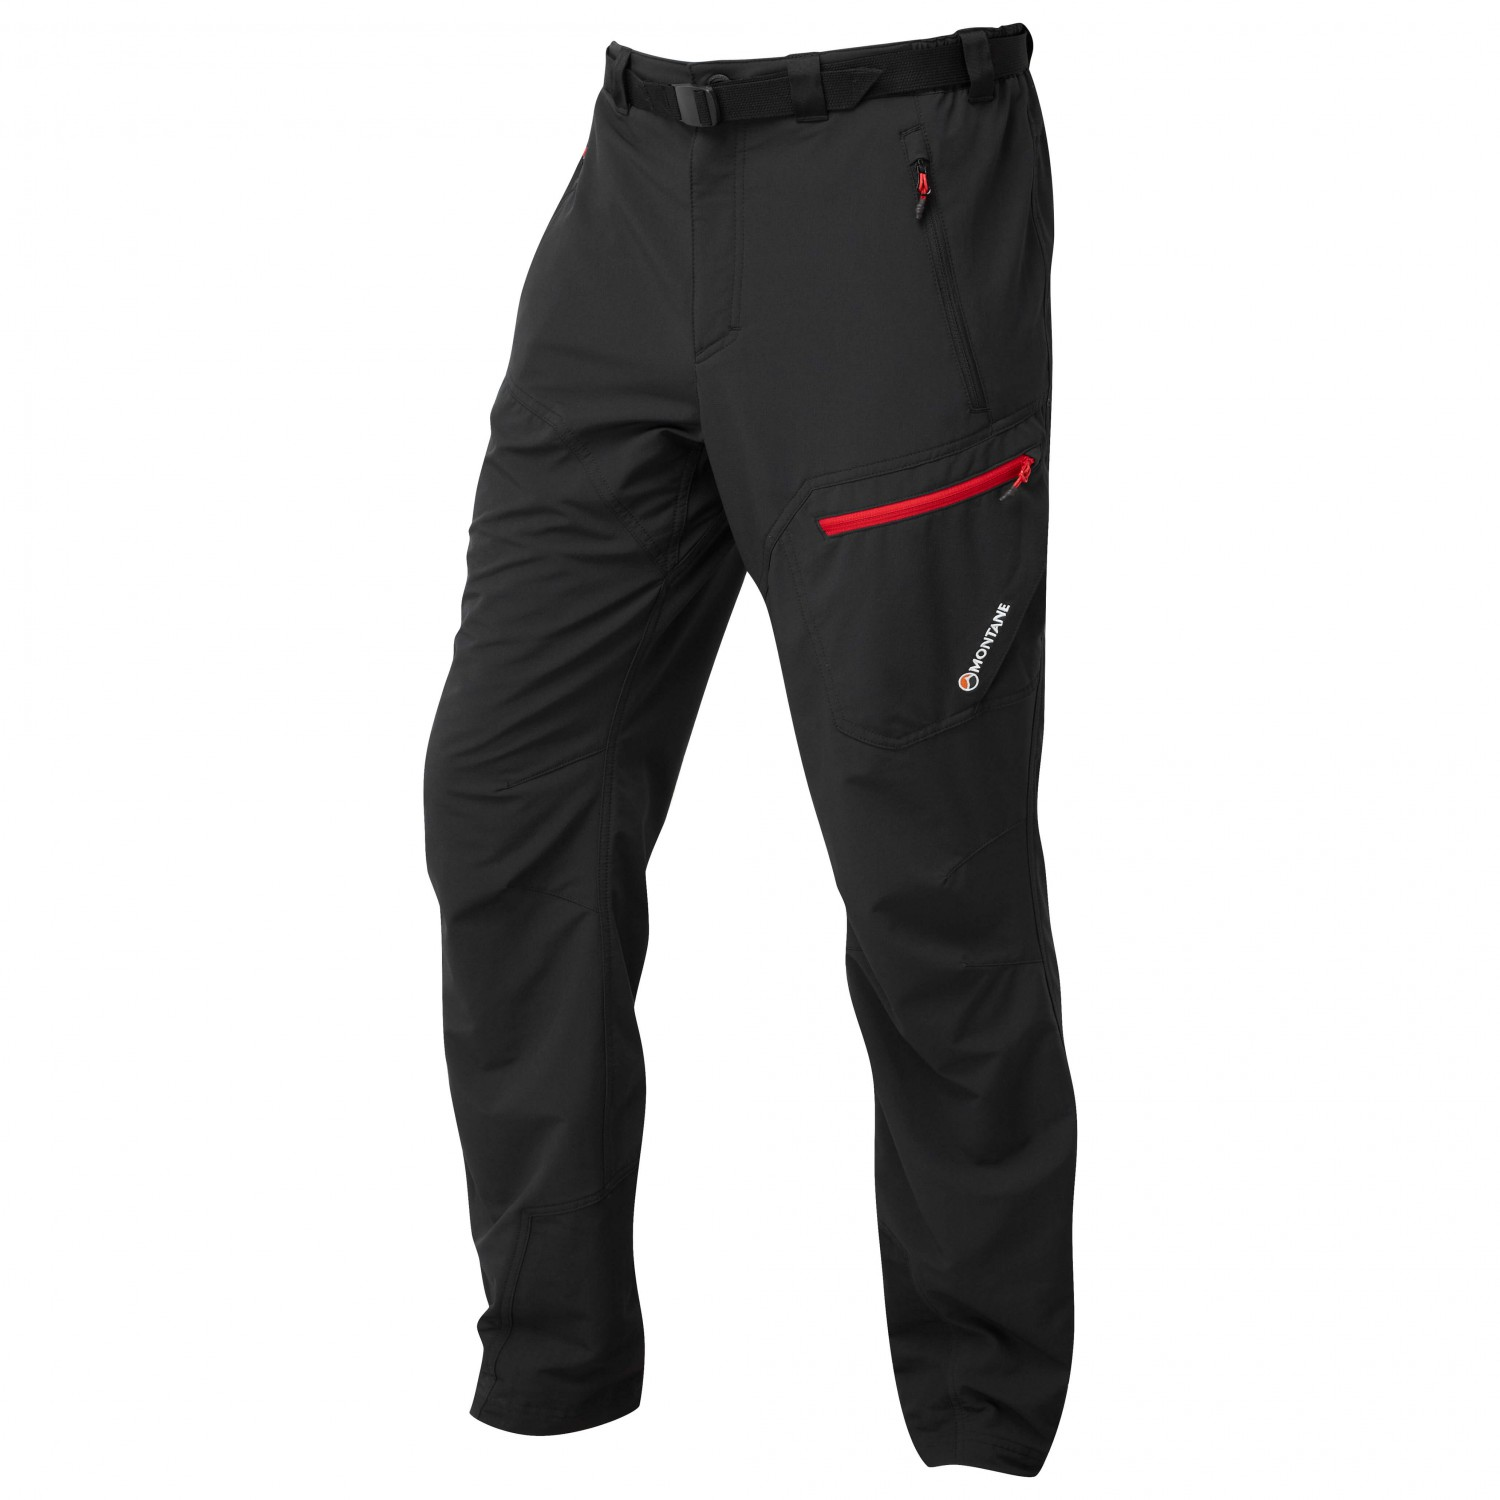 Shop for Hiking Pants at REI - FREE SHIPPING With $50 minimum purchase. Top quality, great selection and expert advice you can trust. % Satisfaction Guarantee.